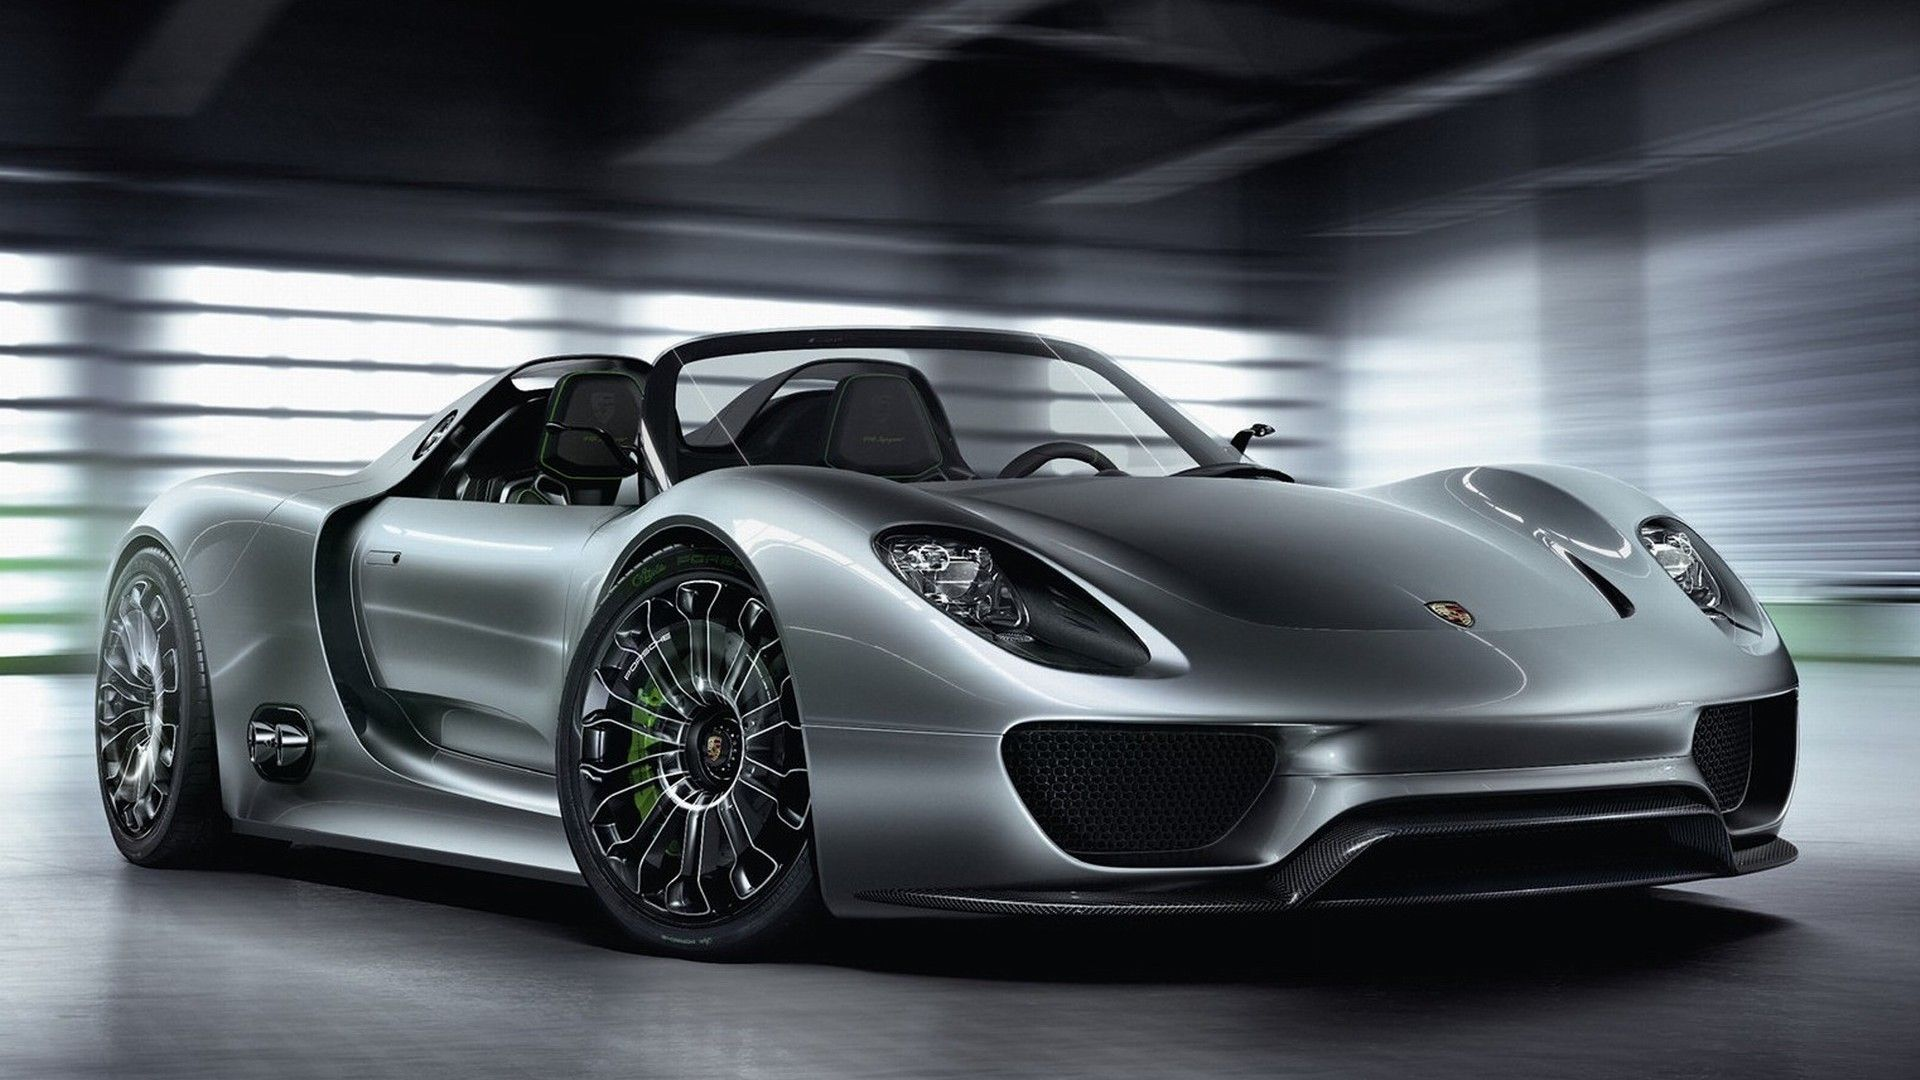 b35eee02d60d646d5706834da1bd3250 Fabulous How Much Does the Porsche 918 Spyder Concept Cost In Real Racing 3 Cars Trend